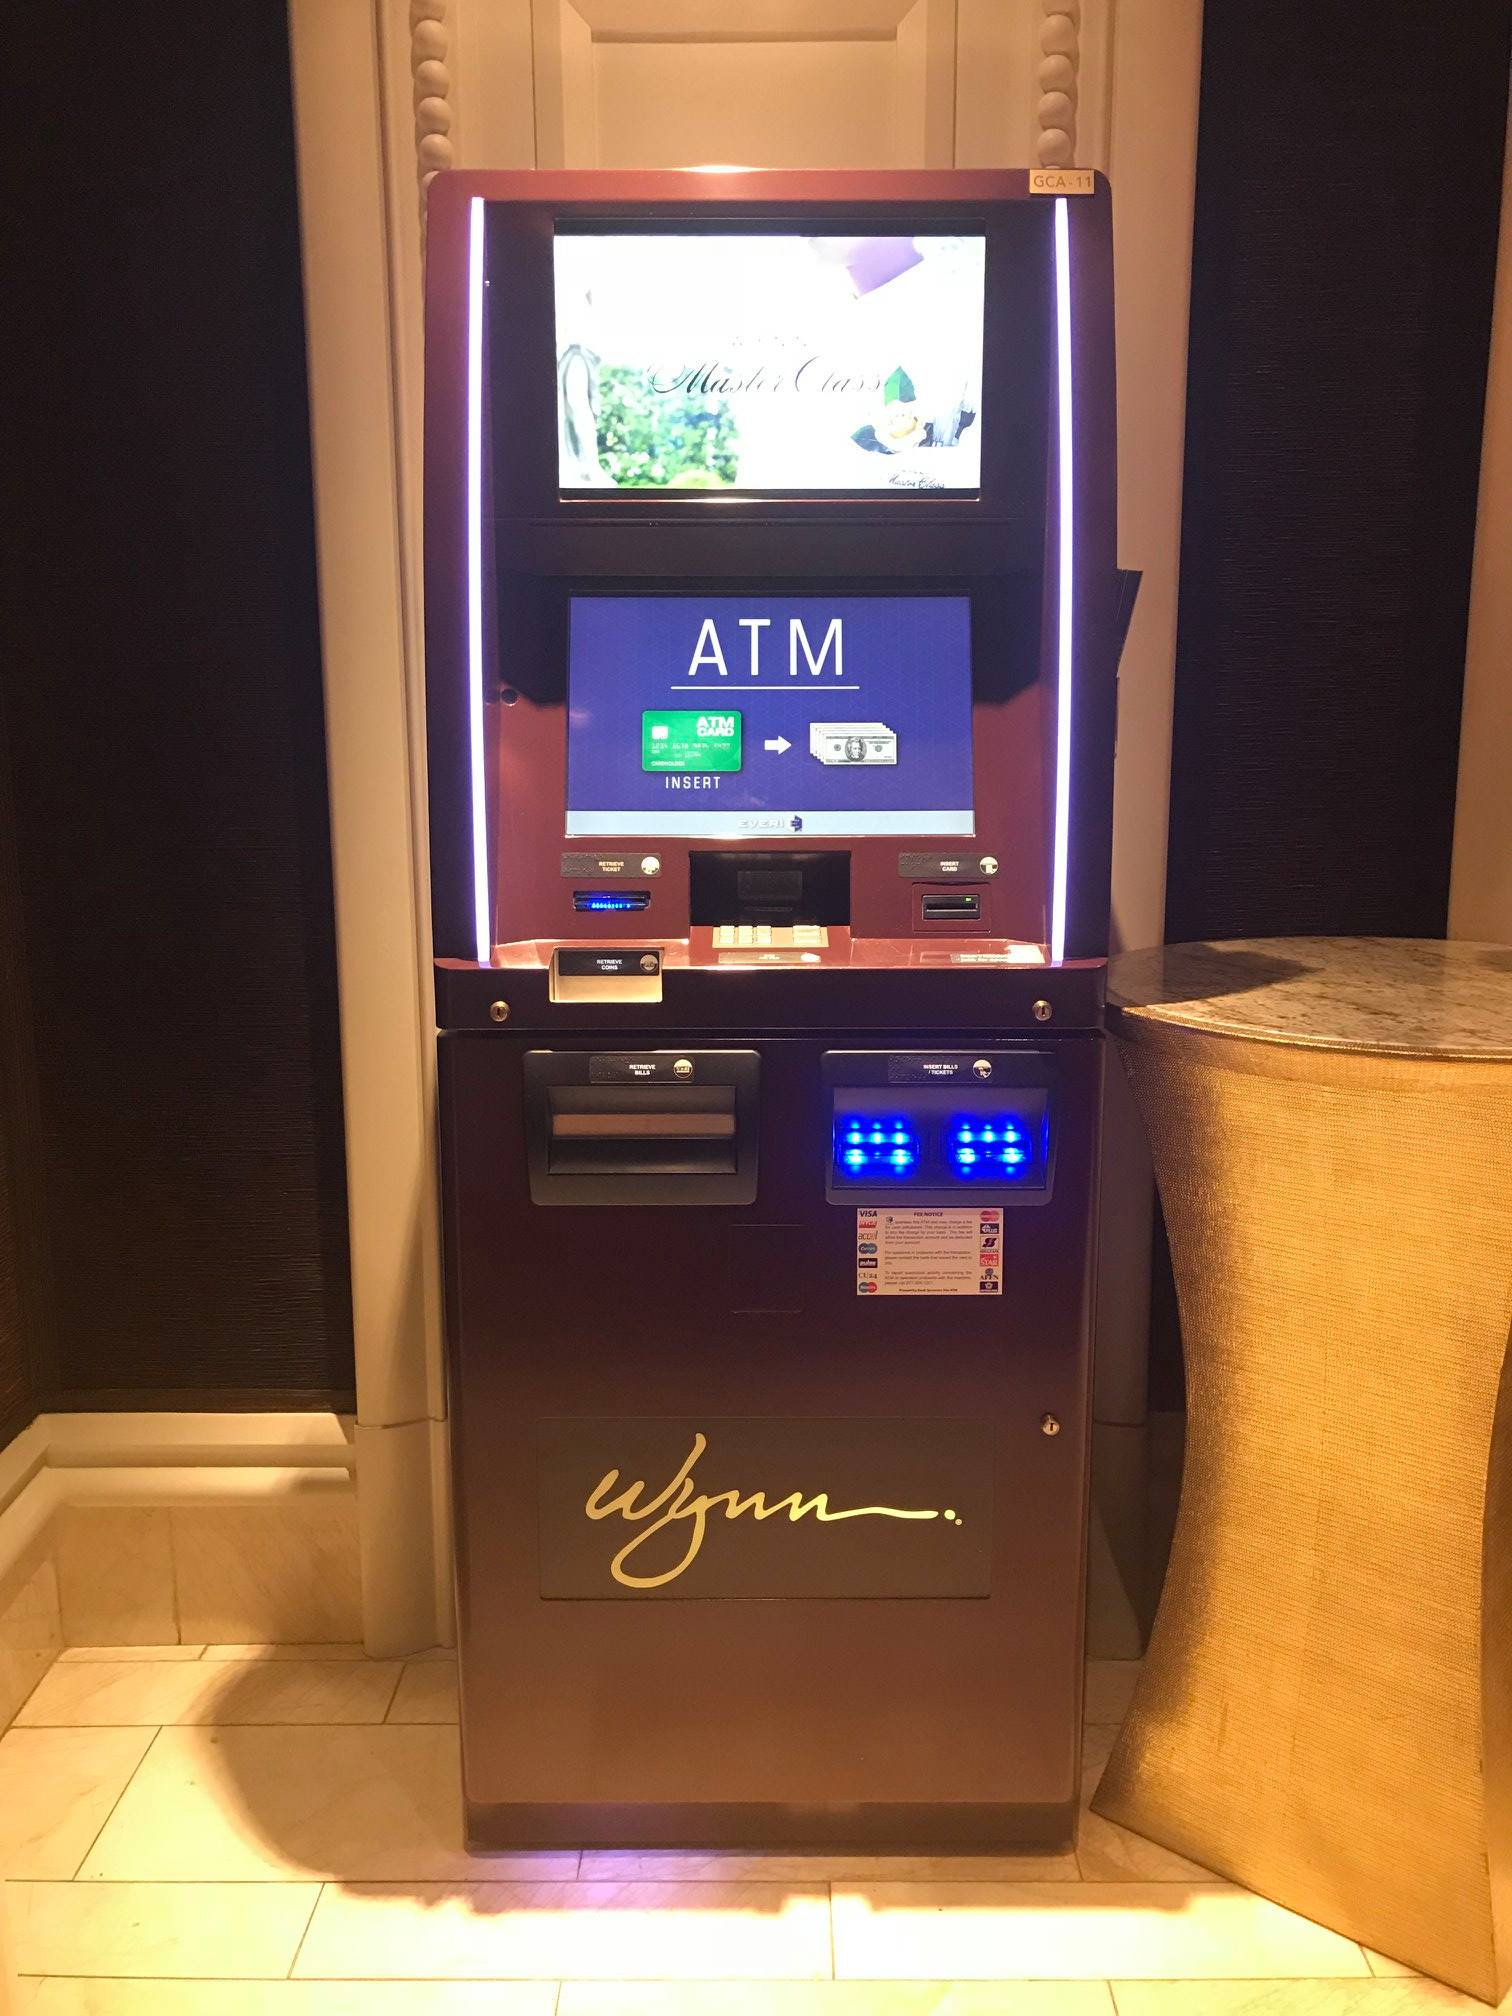 Photograph of ATM machine at Wynn Hotel